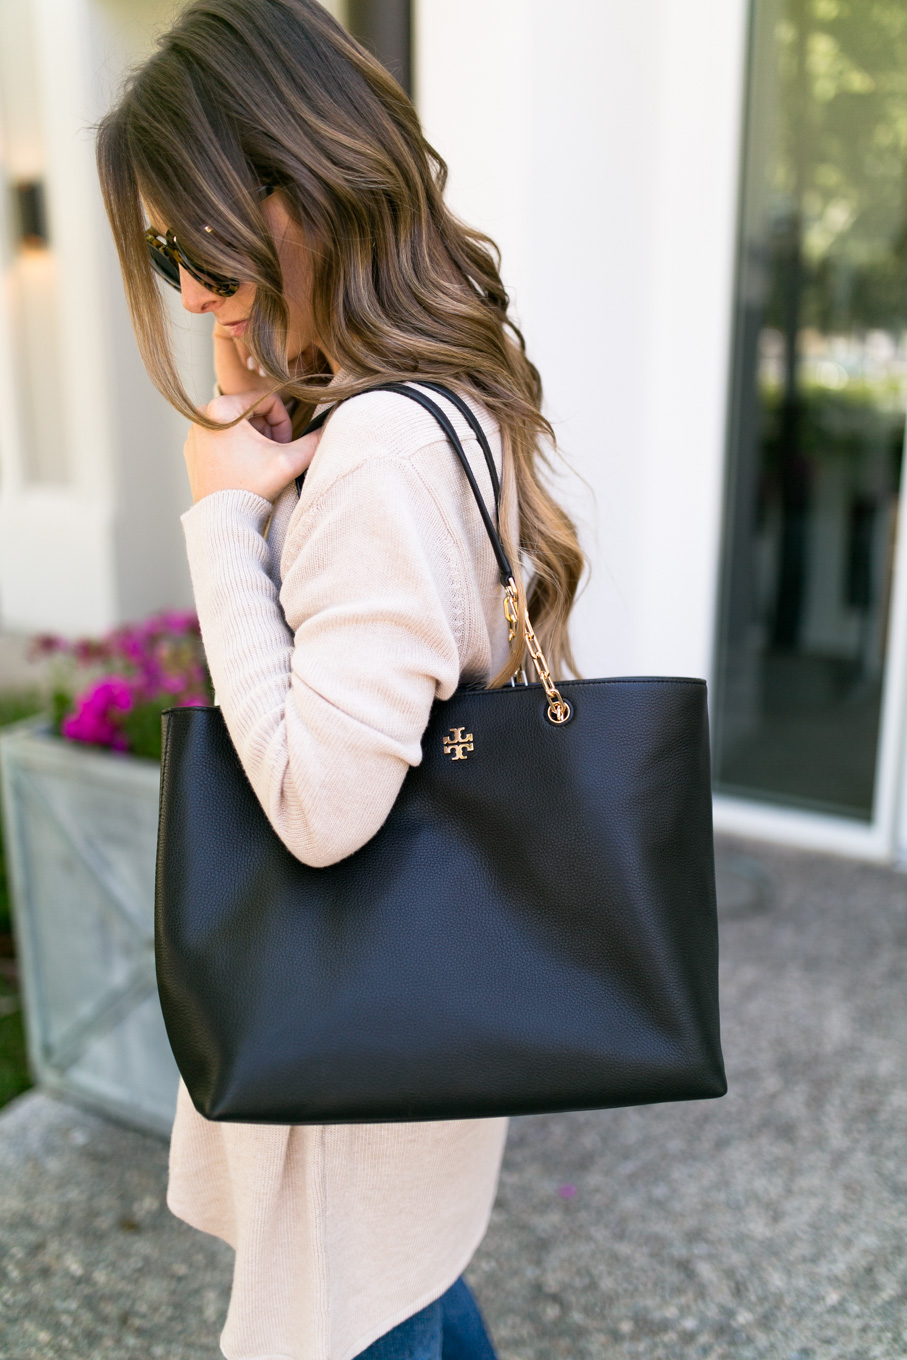 Daryl-Ann Denner wears Tory Burch Frida pebbled tote in black from Nordstrom Anniversary Sale 2017